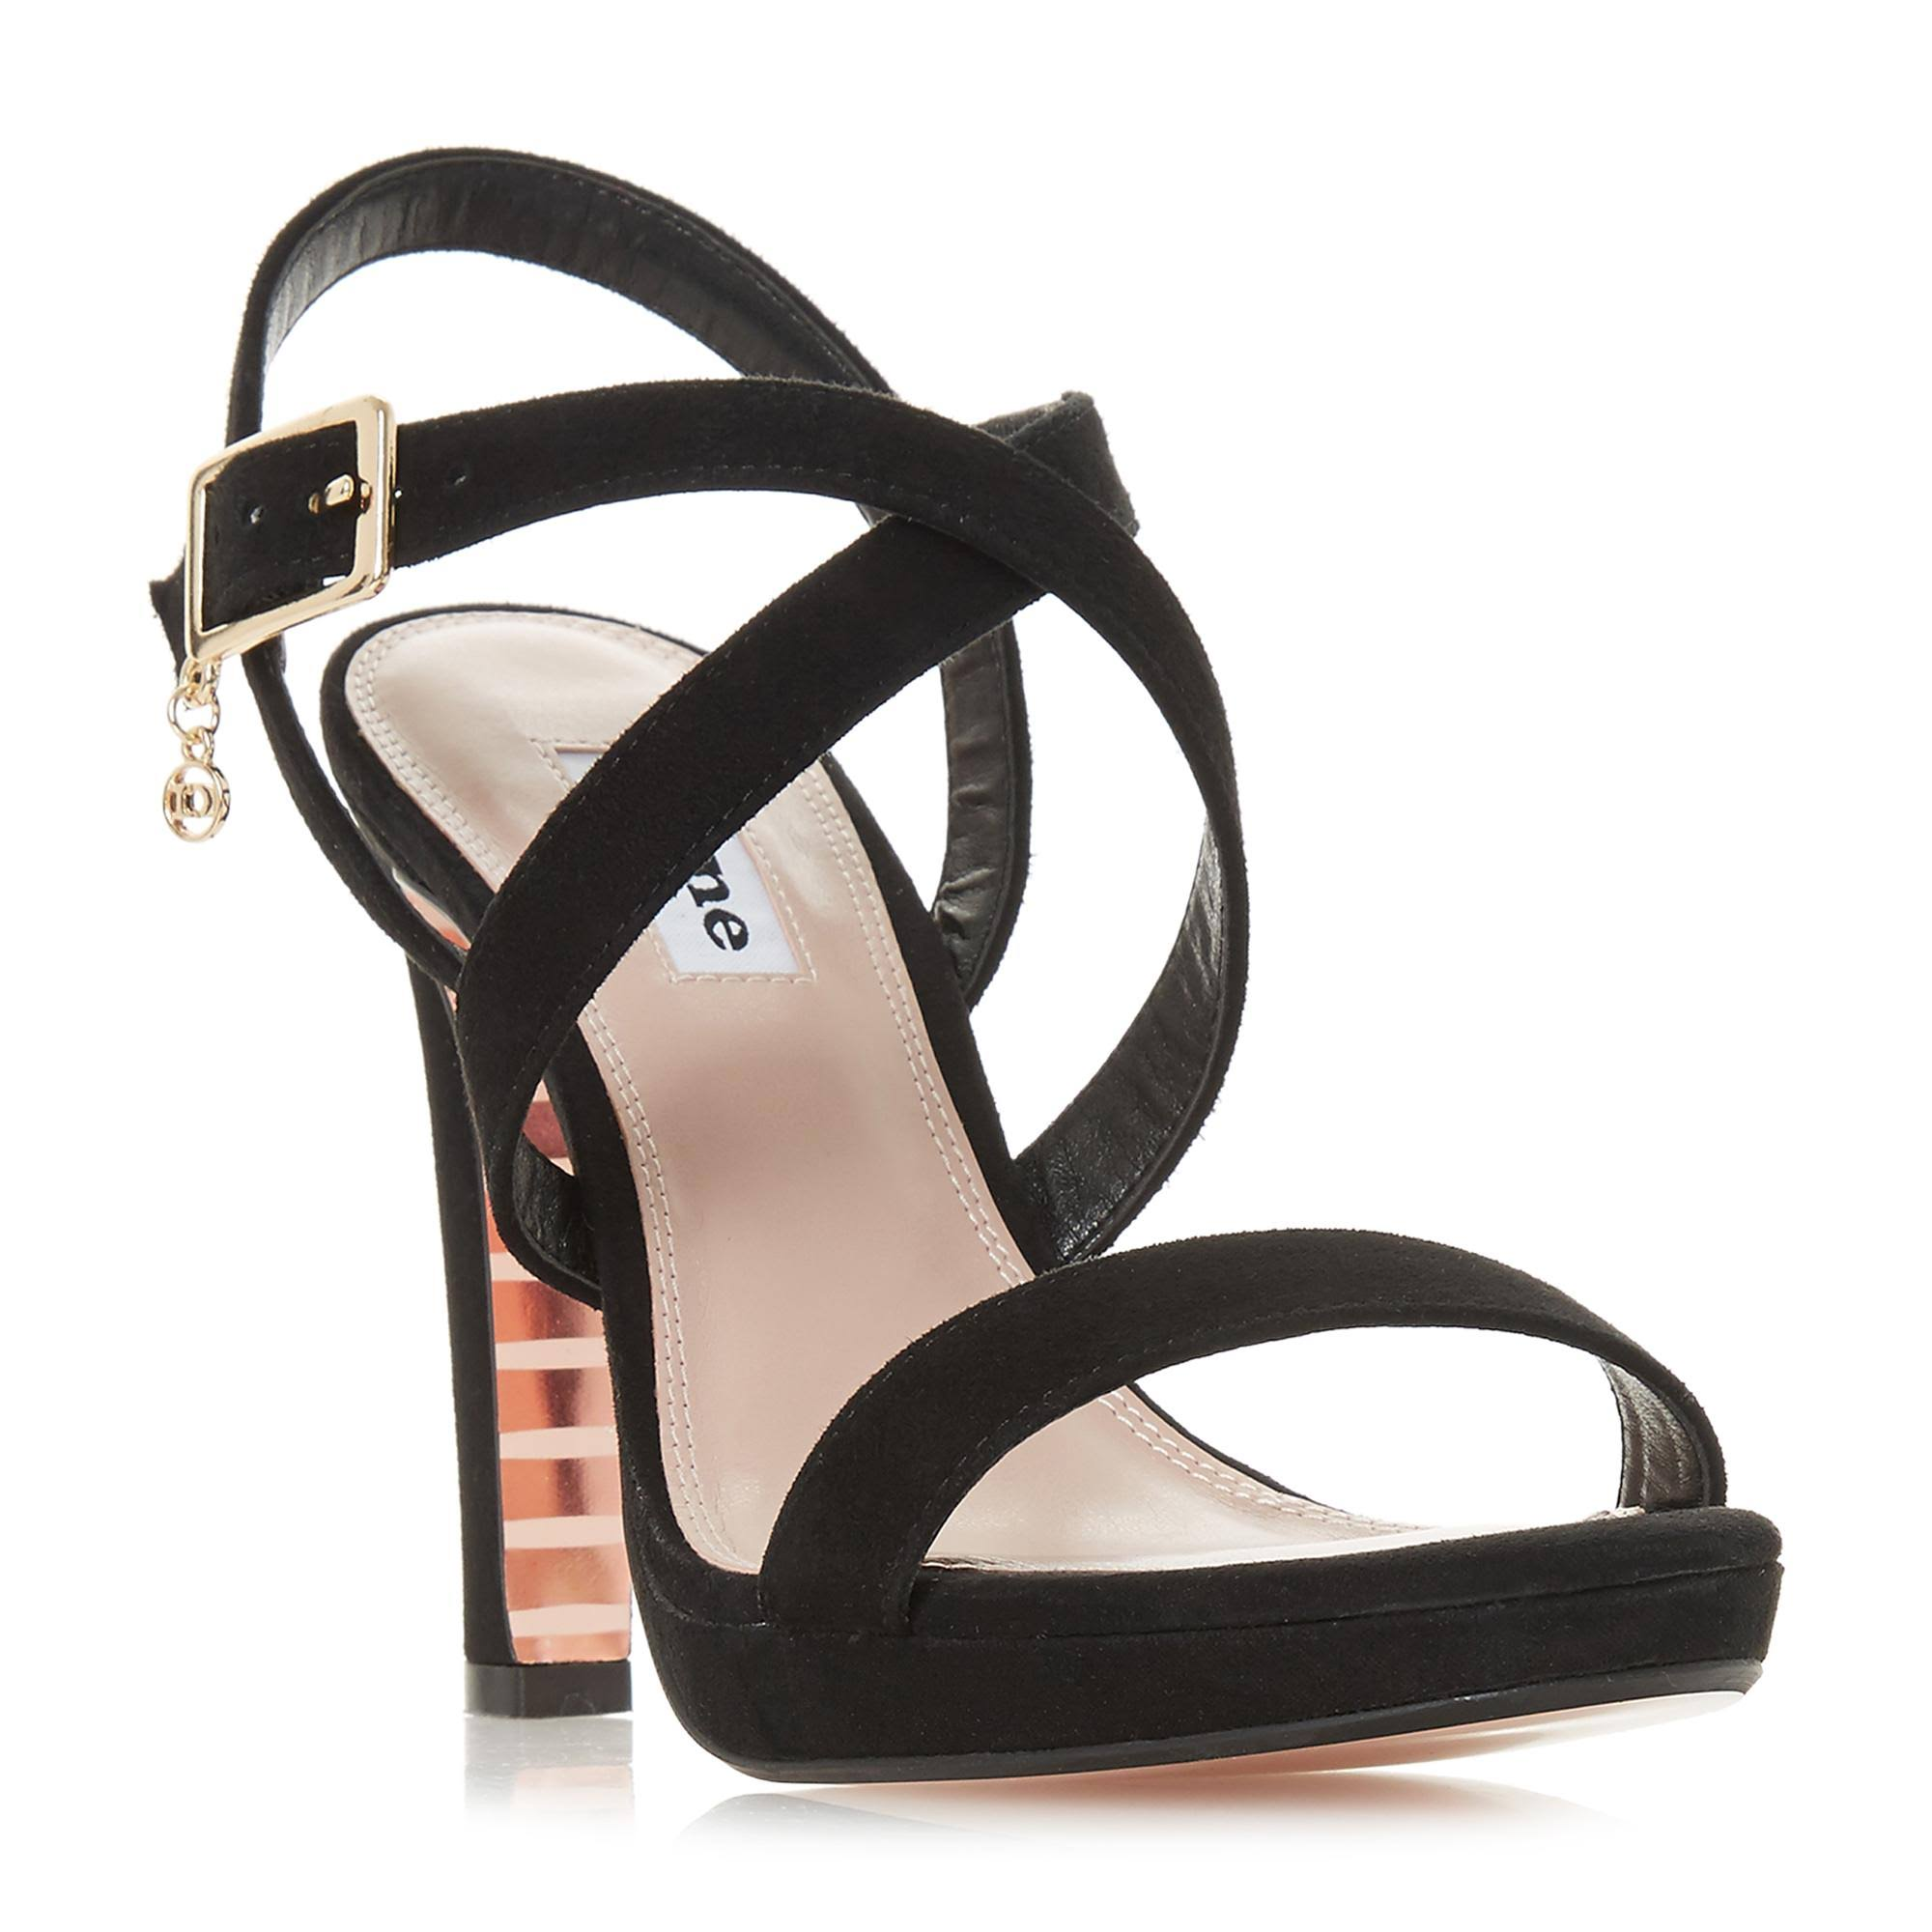 Dune Black In Con Tacco Strap Ladies Block 7 Misstee Uk Sandalo Size Cross GUqpSMzV